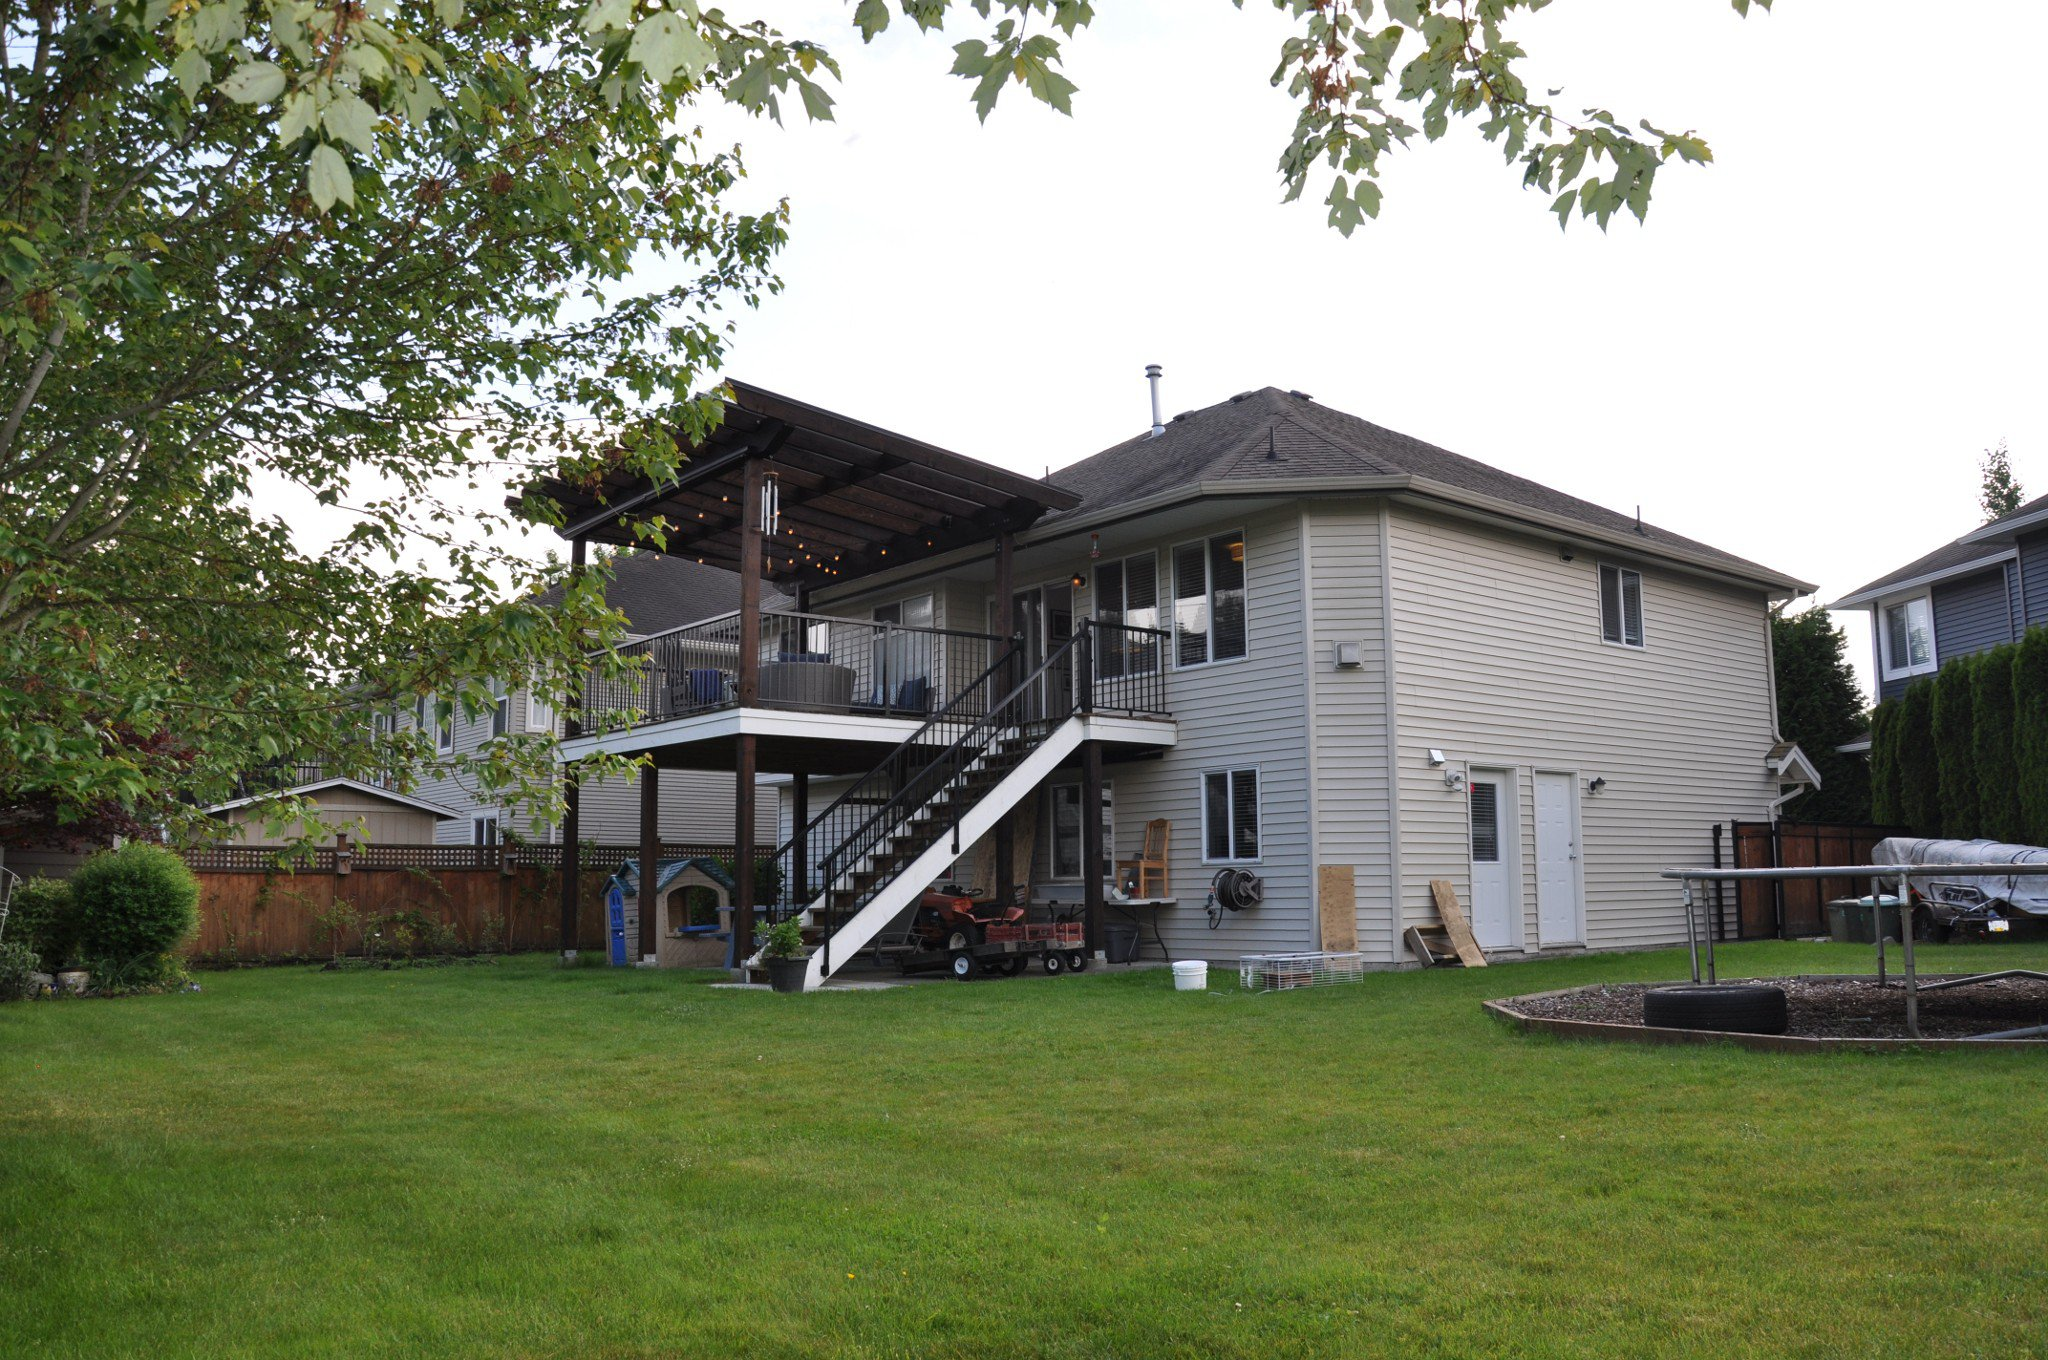 Photo 23: Photos: 4076 Channel St. in Abbotsford: Abbotsford East House for rent